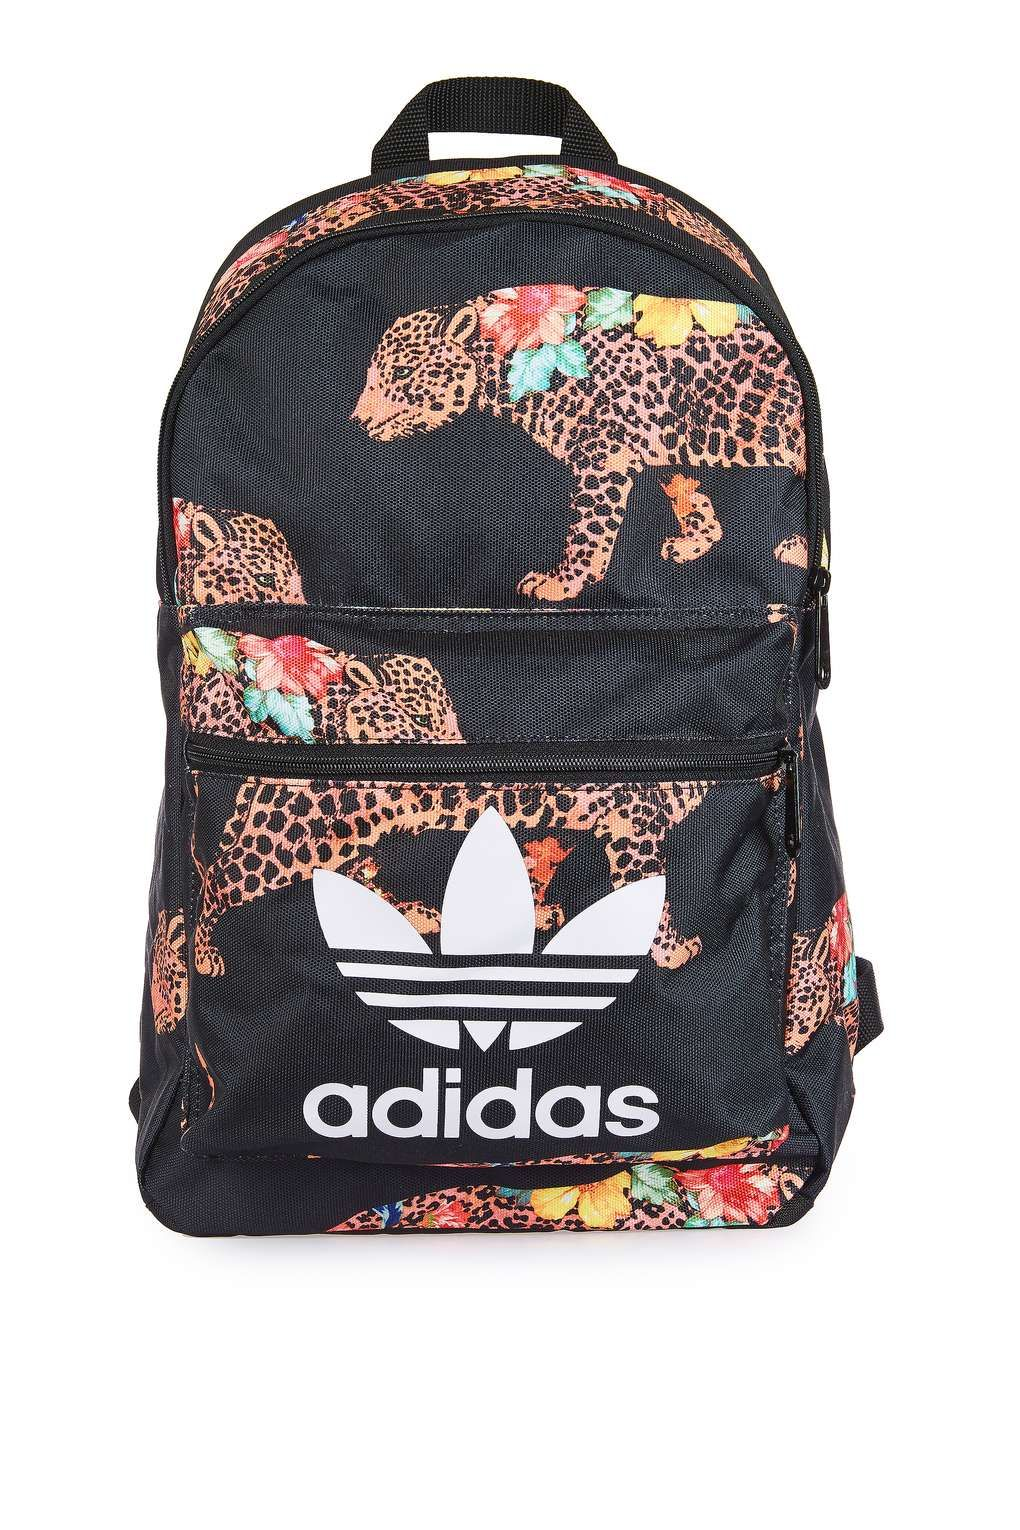 373acb3694 ONCADA Backpack by Adidas Originals in 2019